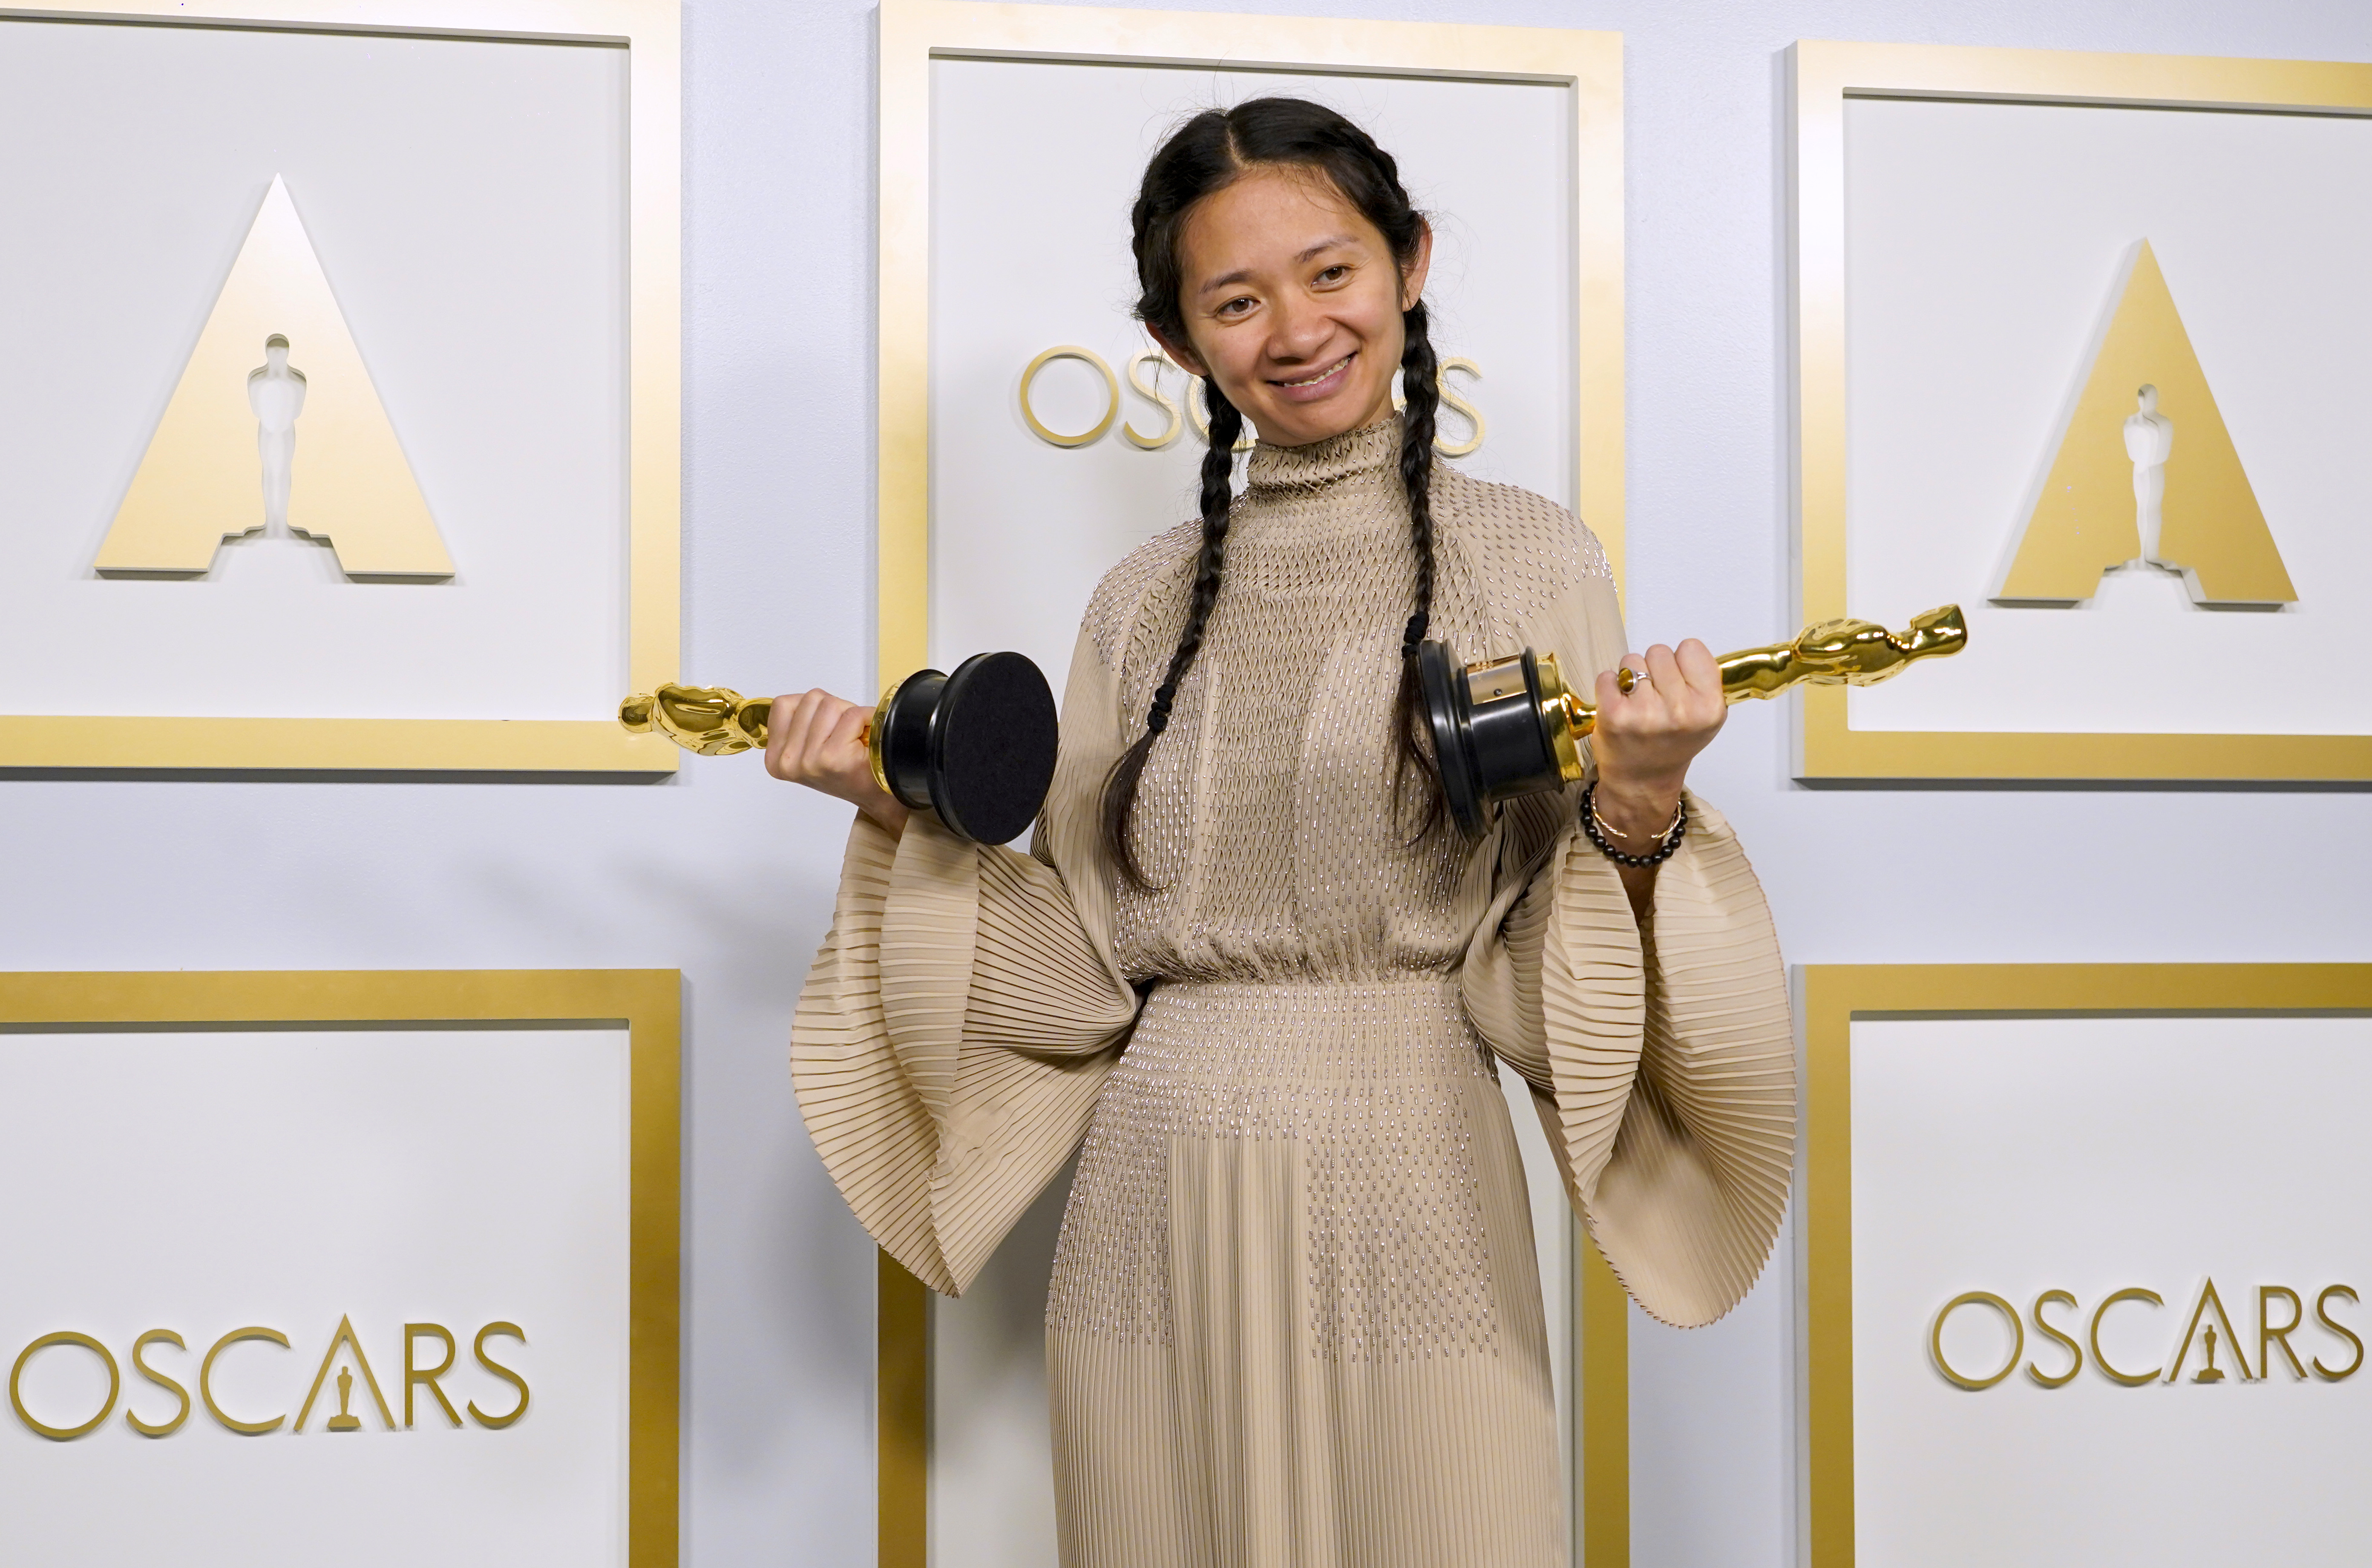 Chloé Zhao at an event for The 93rd Oscars (2021)